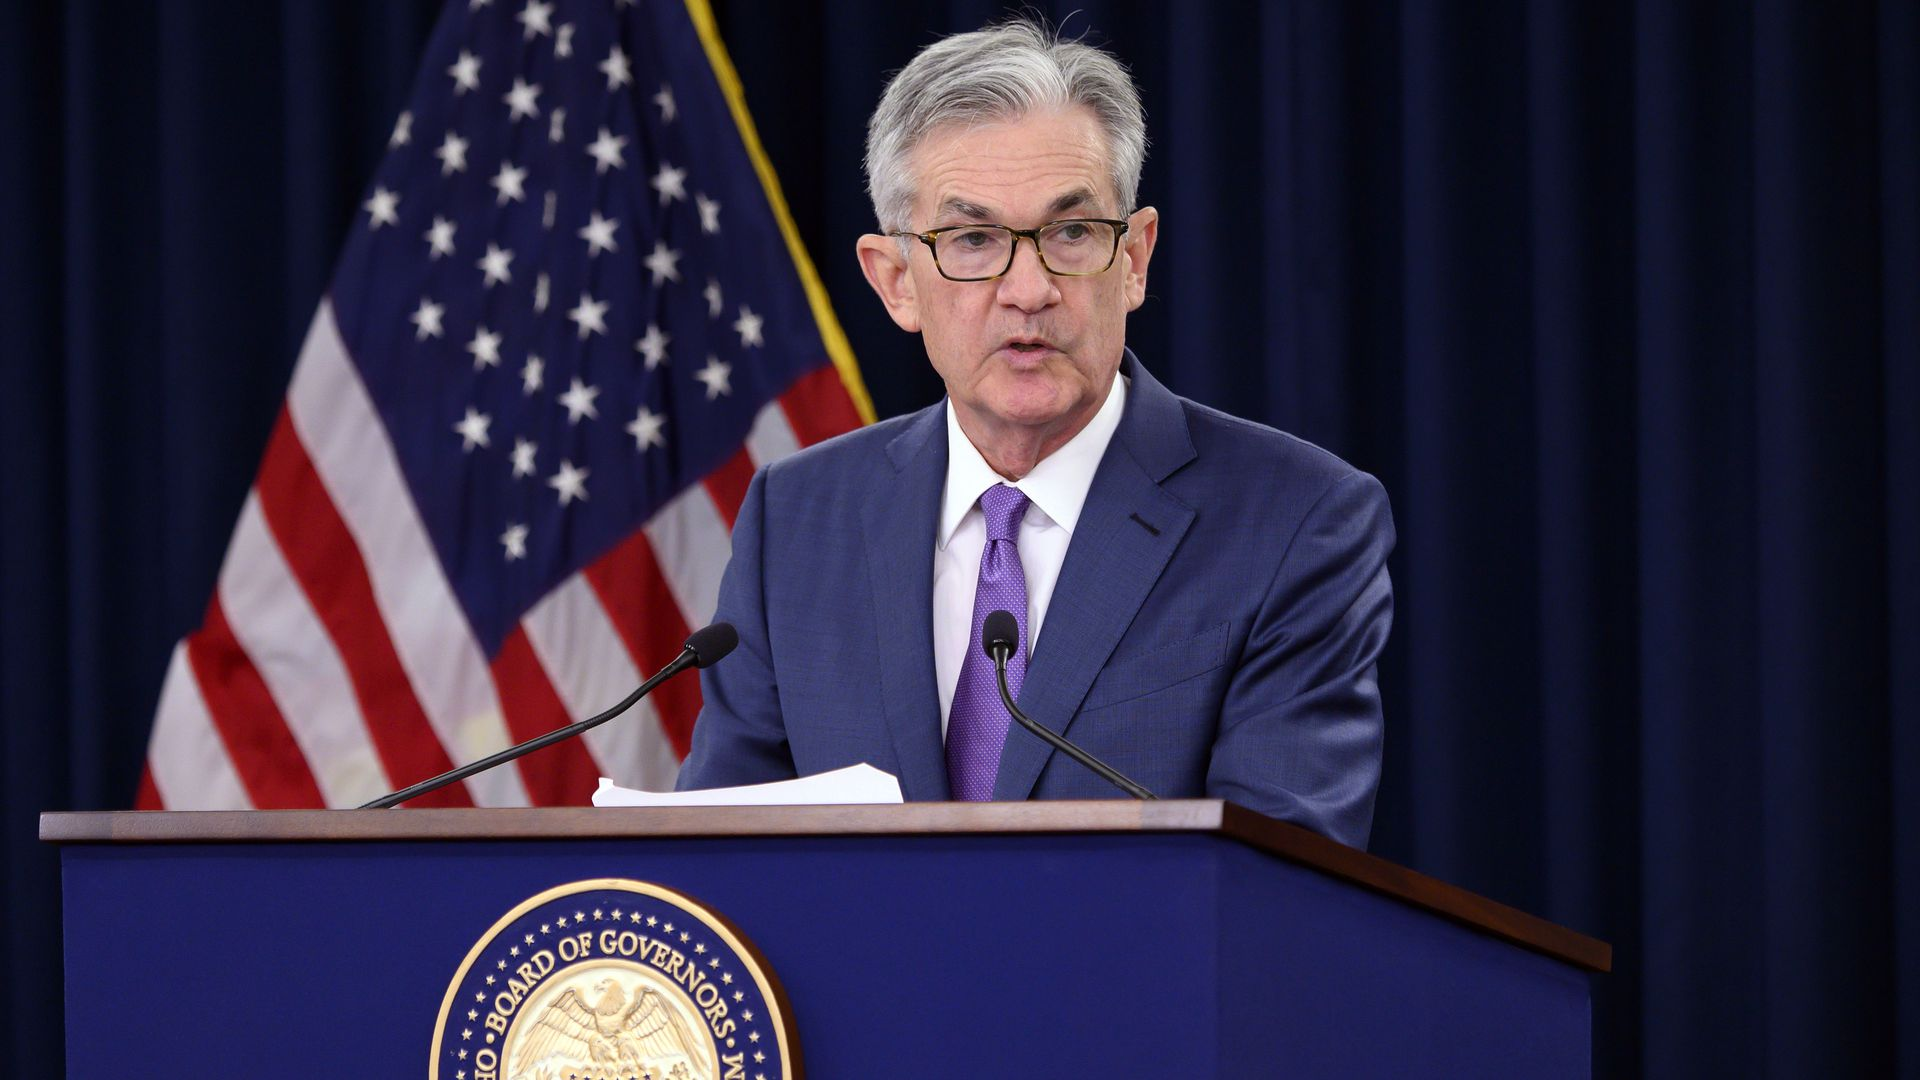 US Federal Reserve Chairman Jerome Powell speaks during a press conference after a Federal Open Market Committee meeting in Washington, DC on July 31, 2019